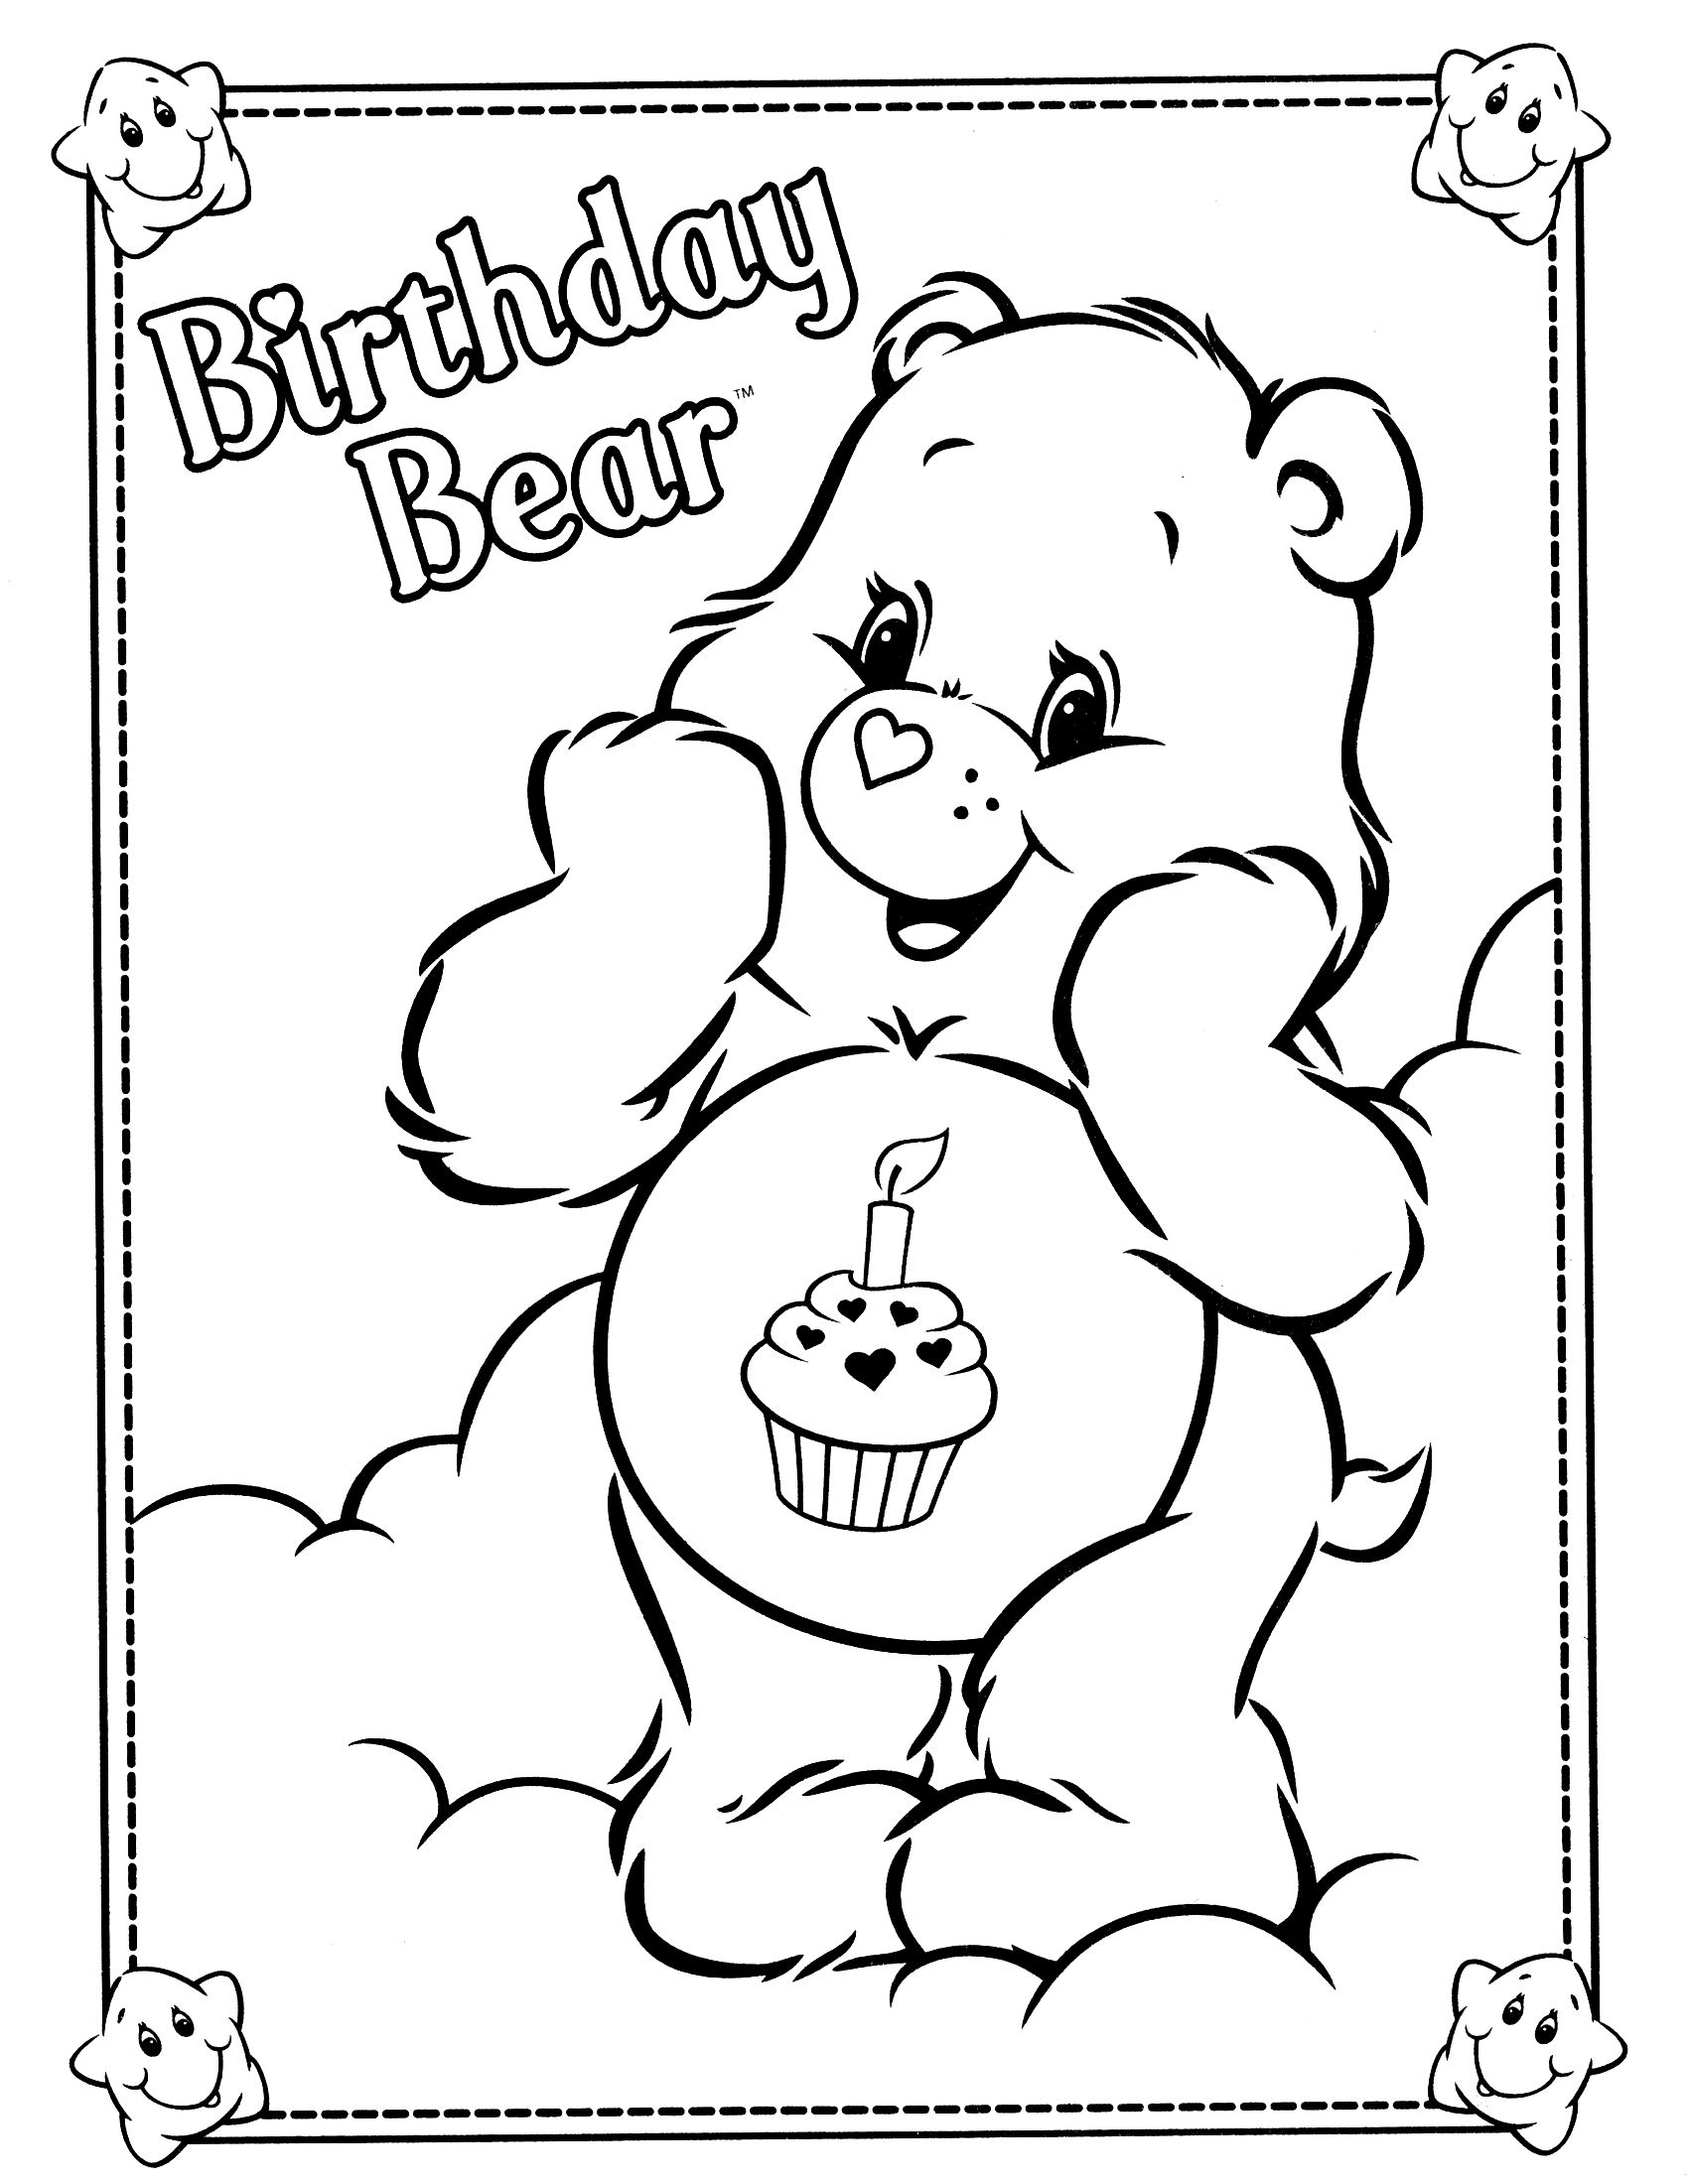 Care Bears 33 Bear coloring pages, Teddy bear coloring